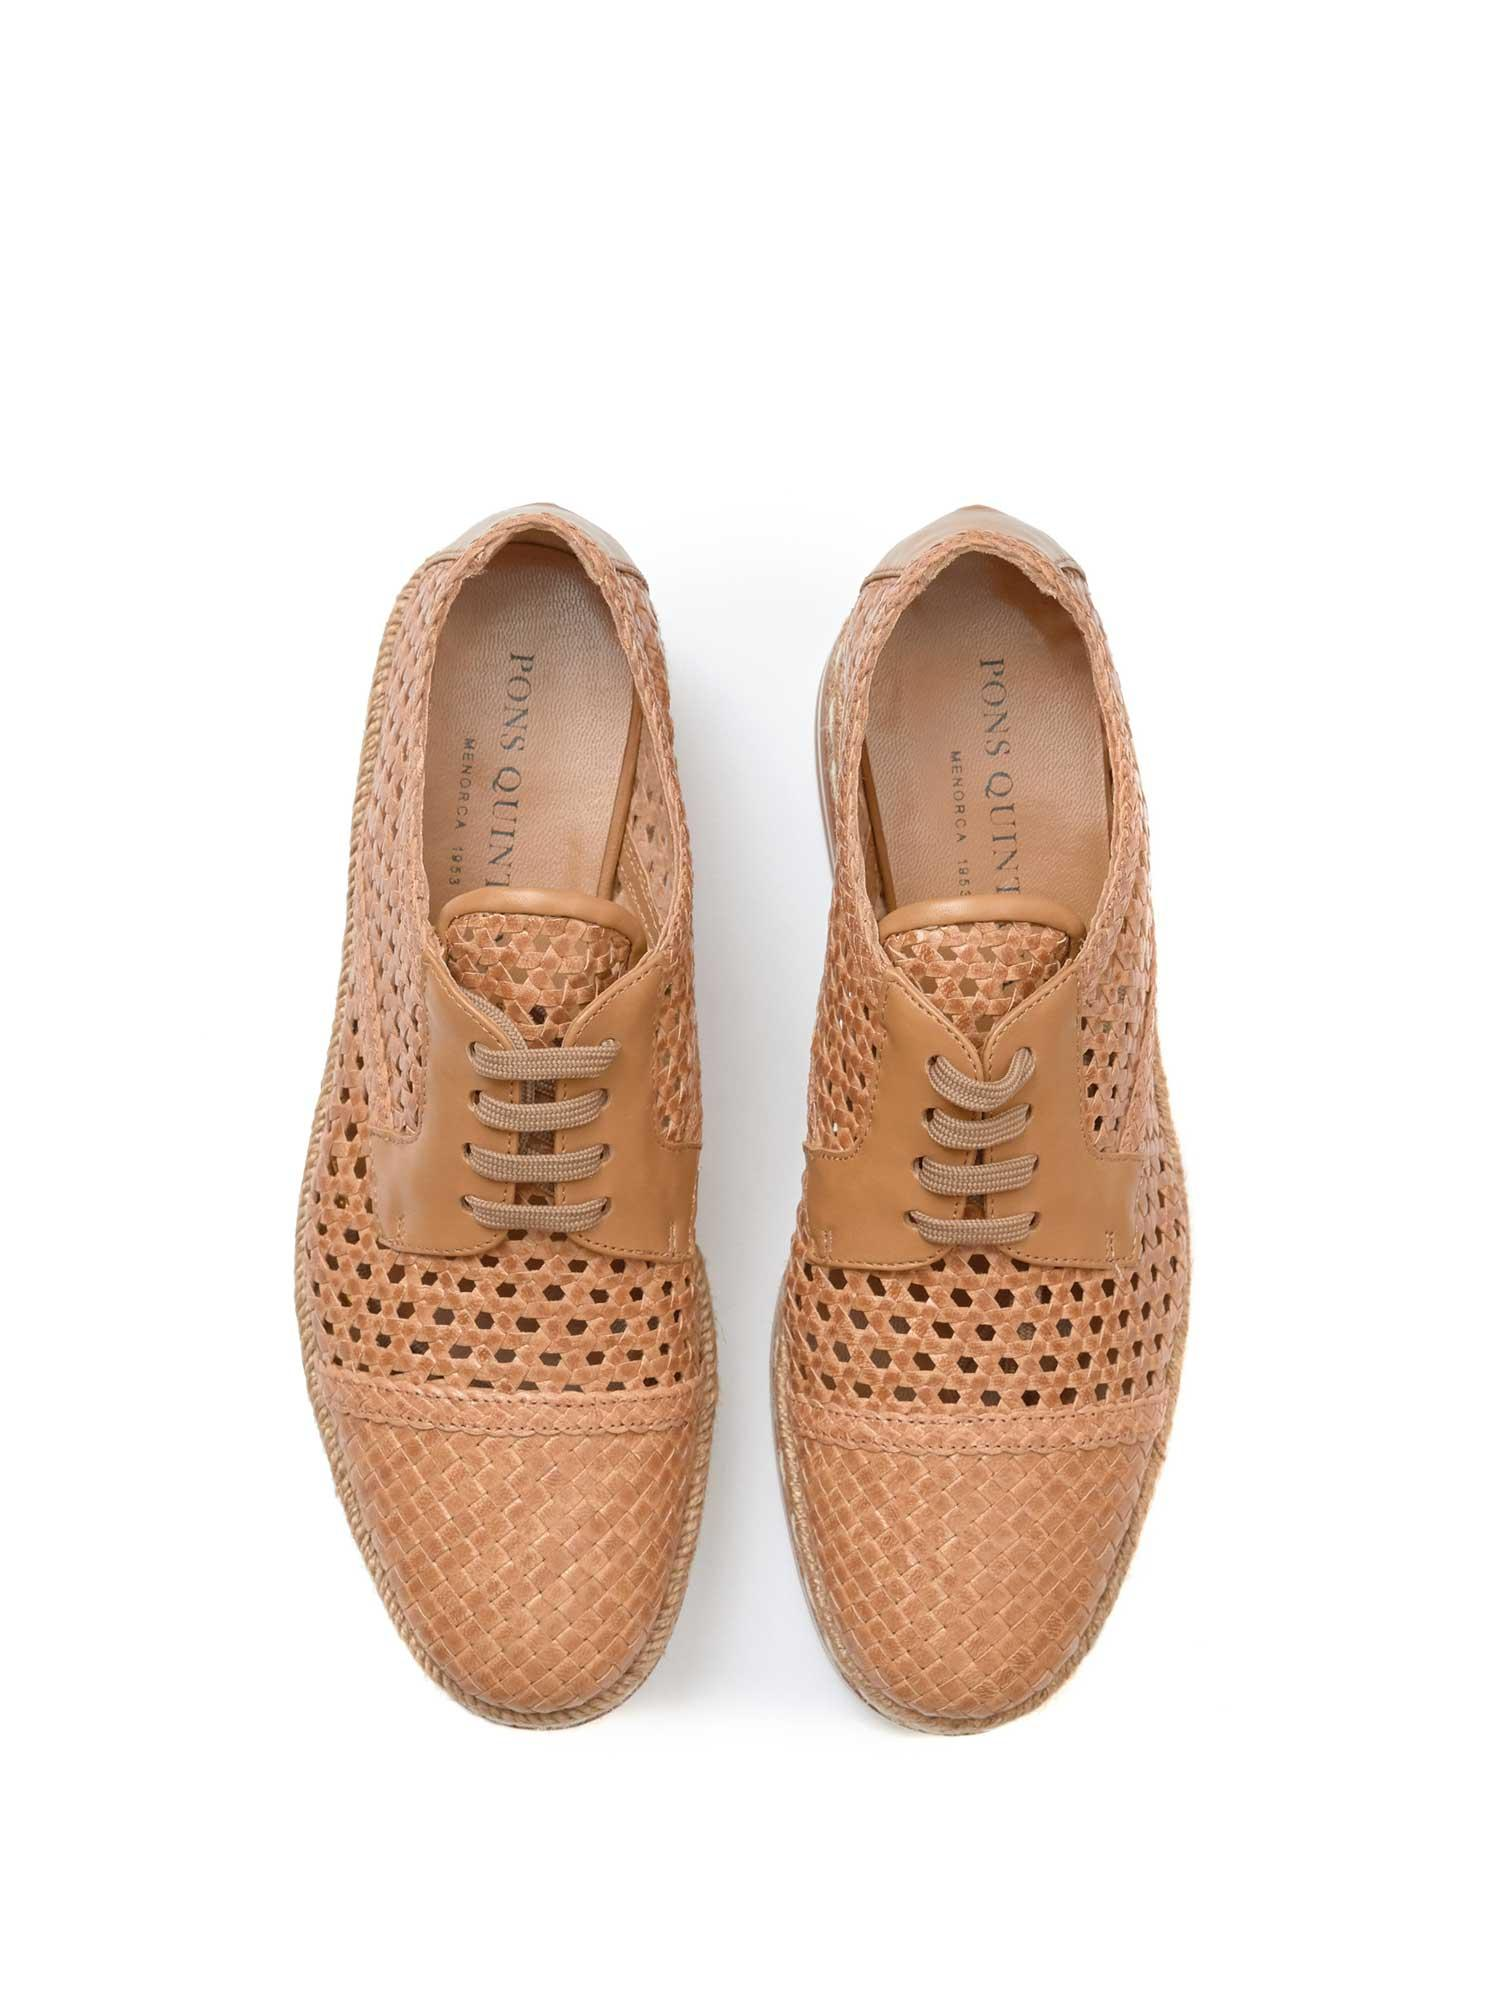 GRID SAND BRAIDED PLATFORM SHOE